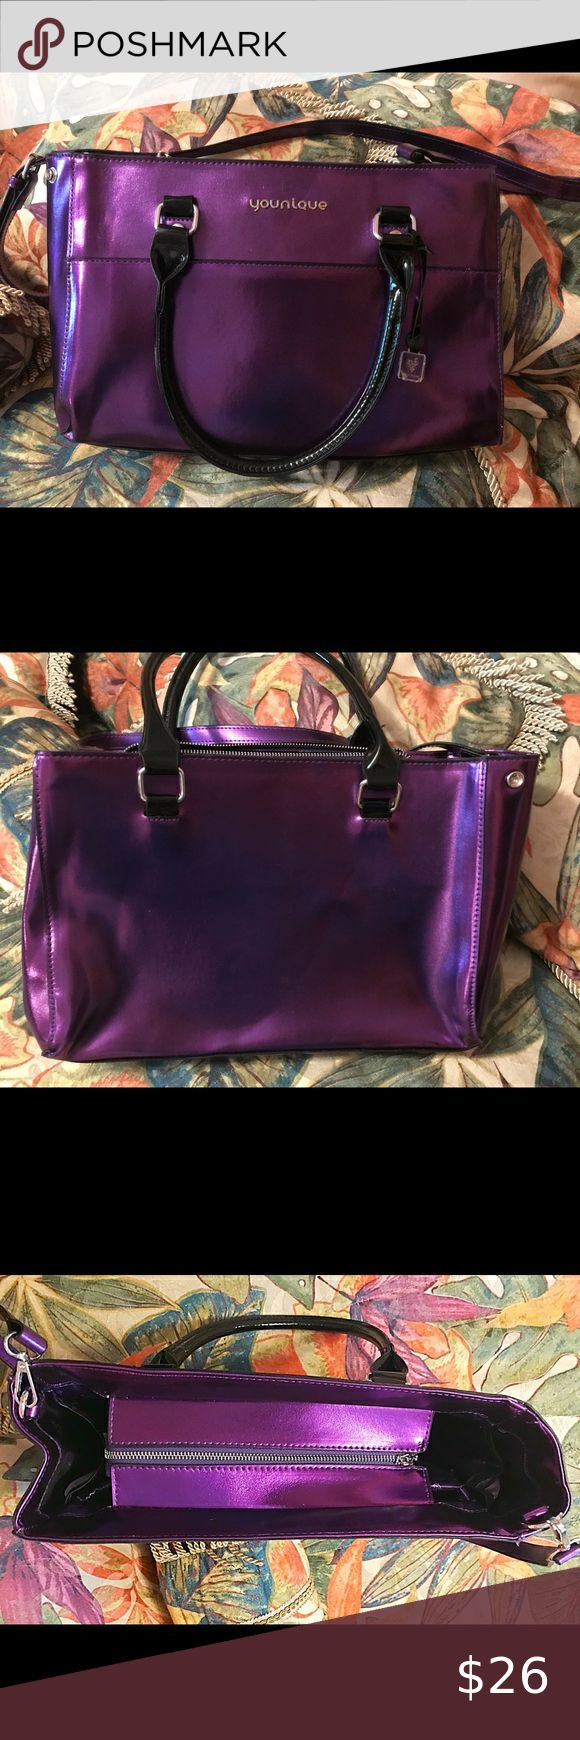 Purple Younique Tote/Makeup Bag Like New in 2020